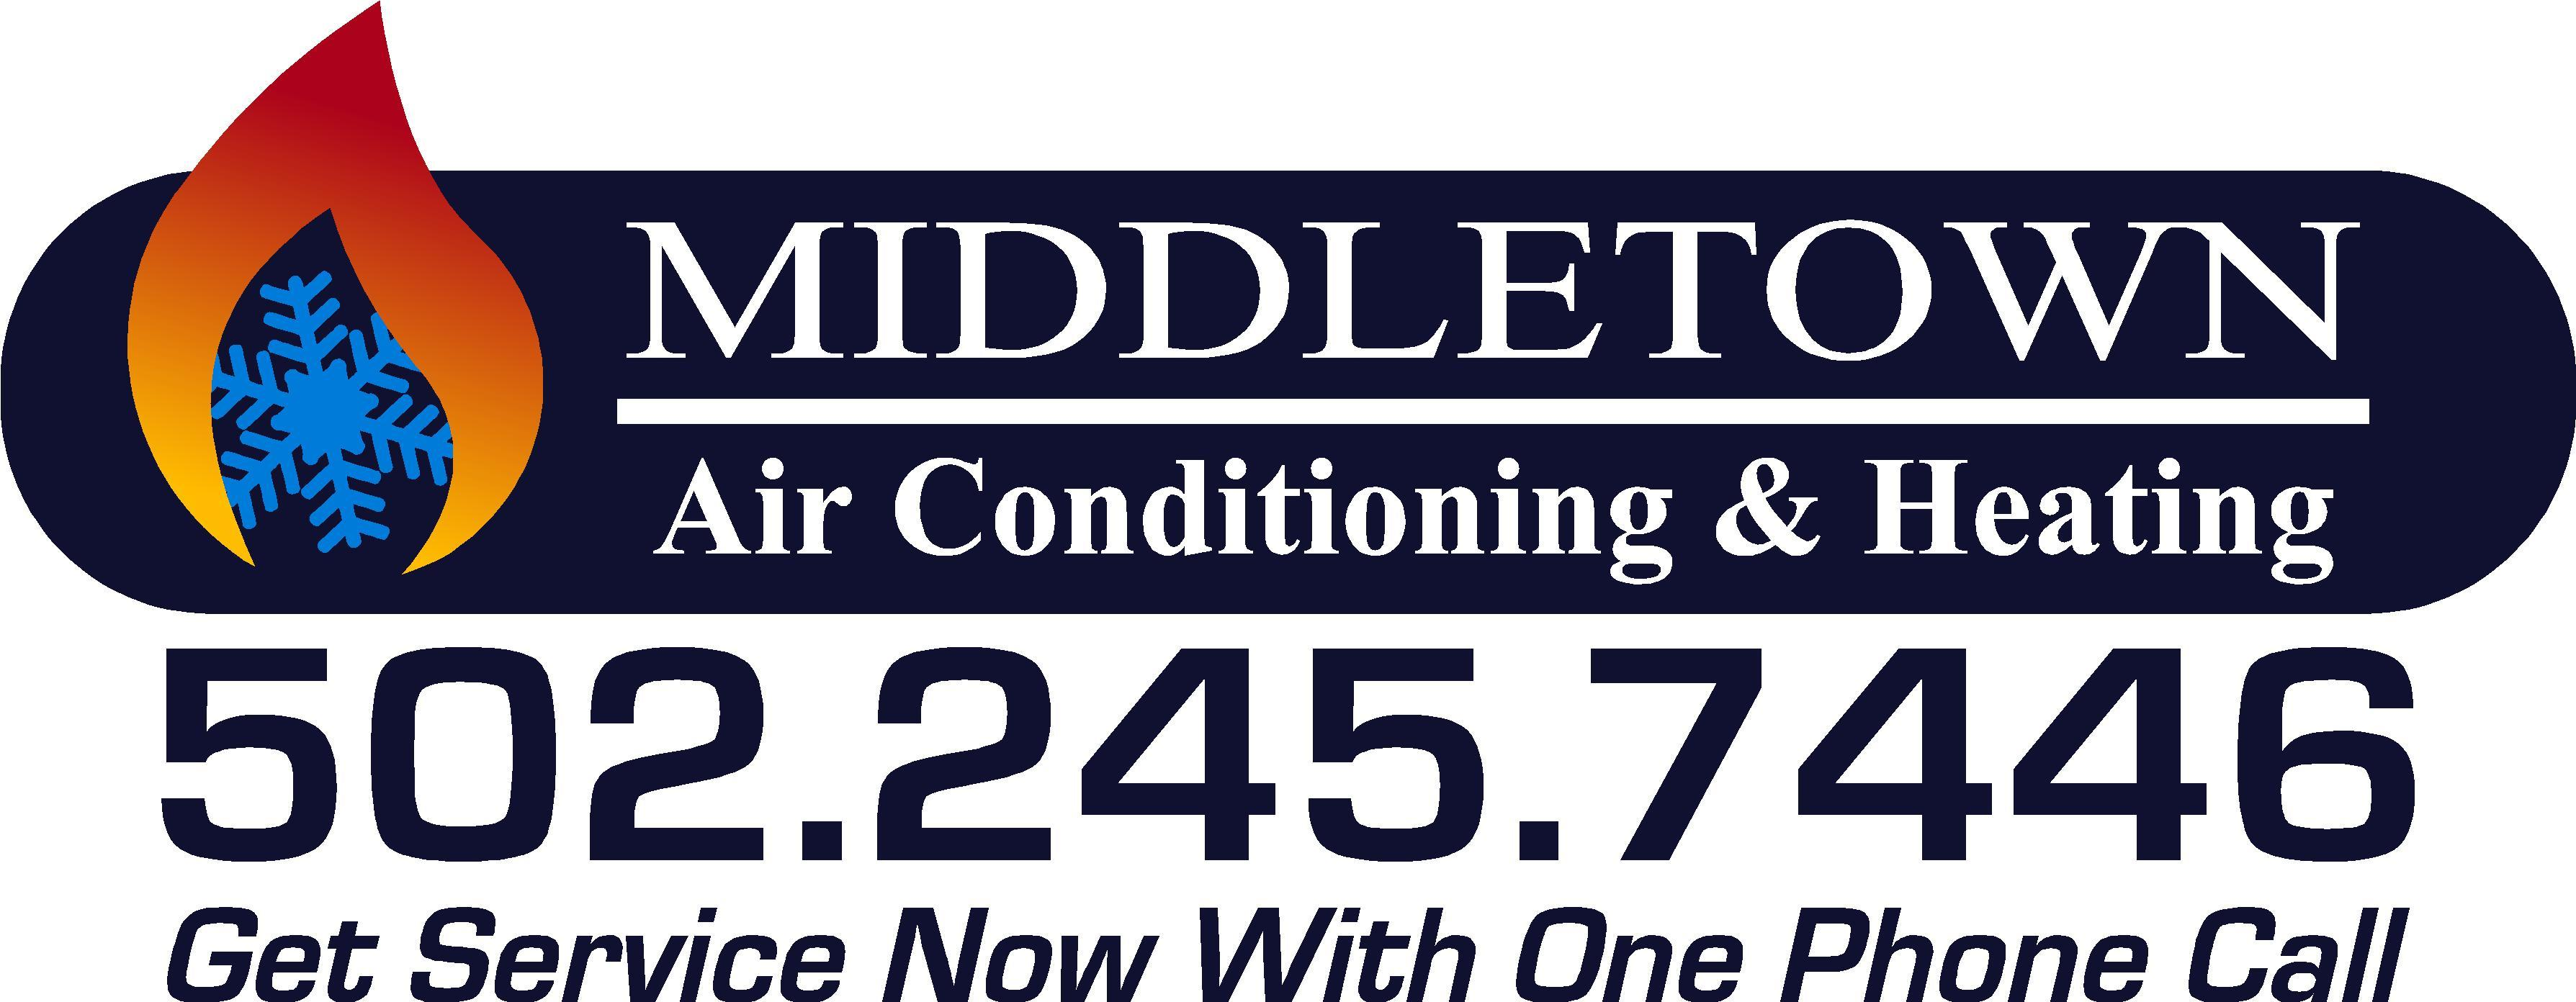 Middletown Air Conditioning & Heating